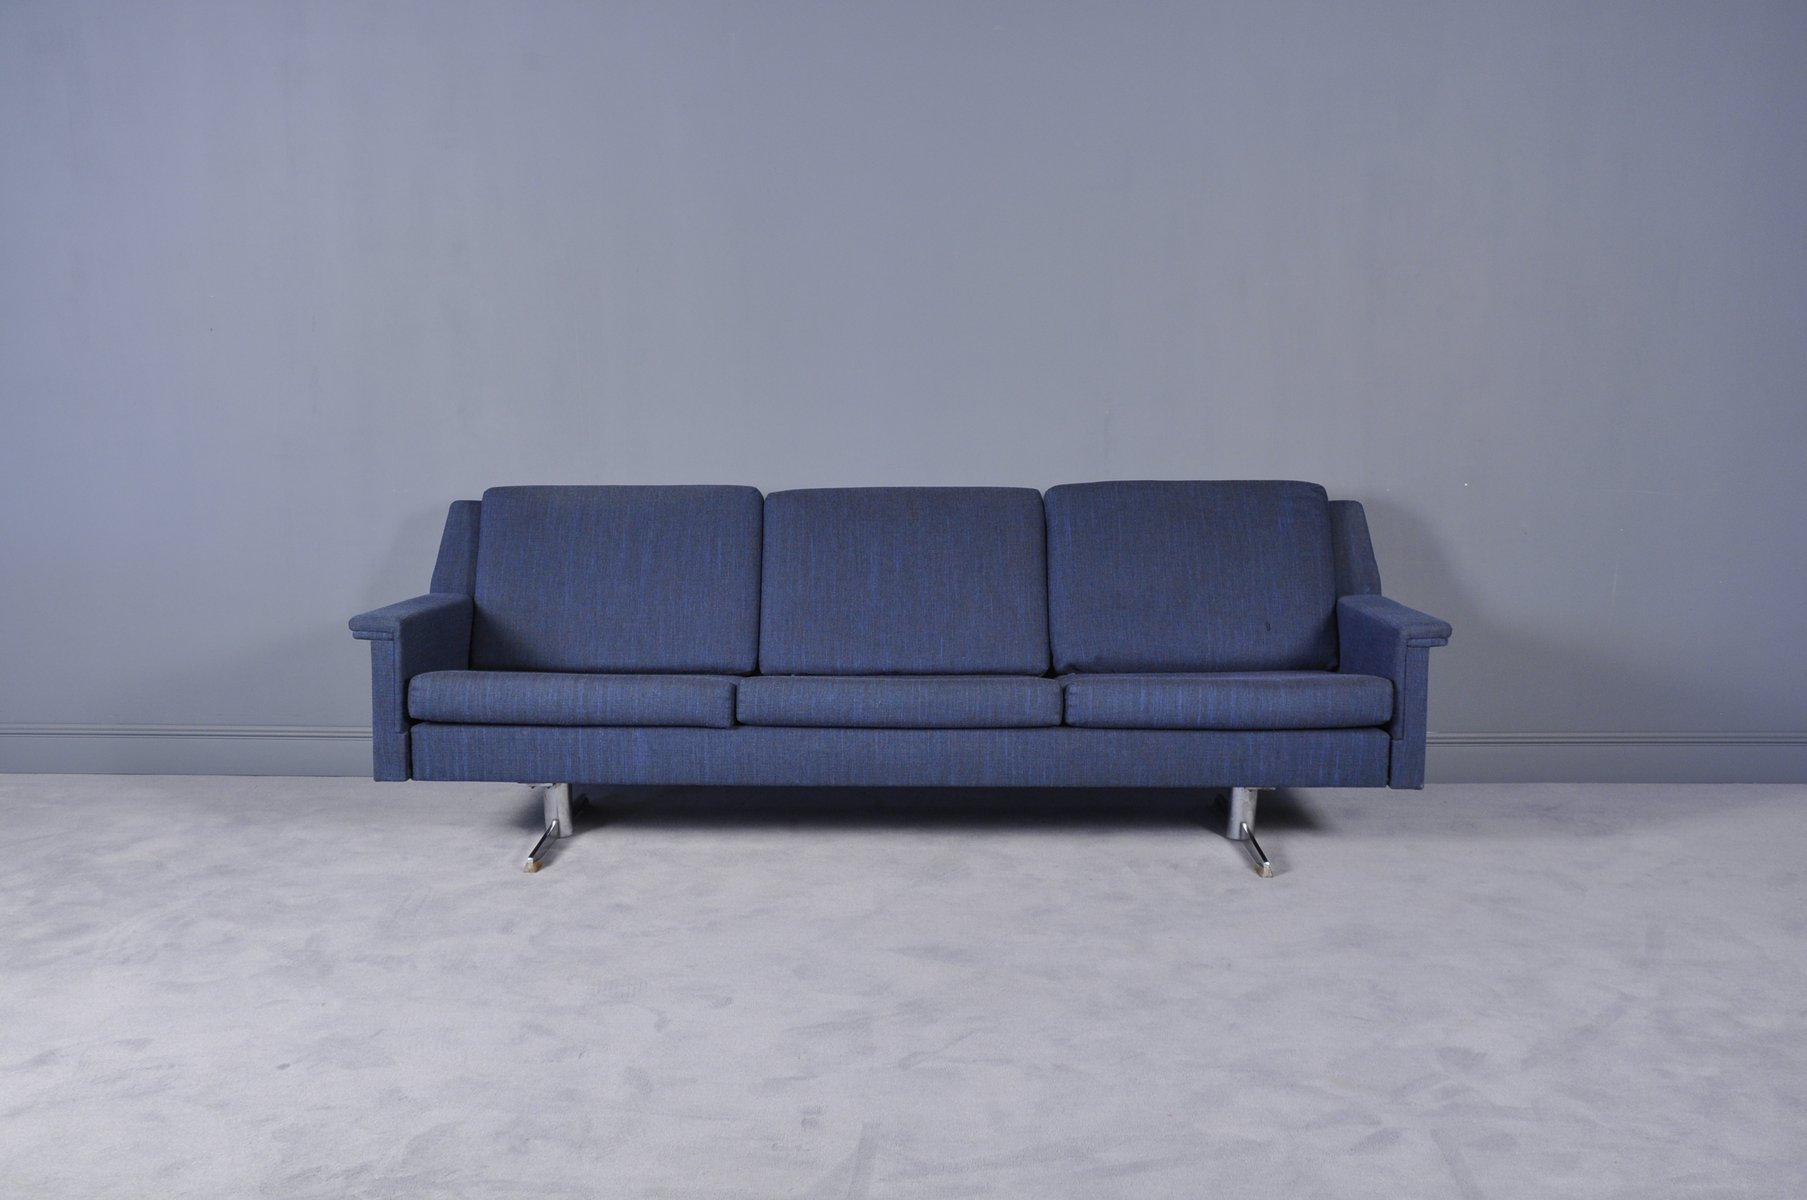 Midcentury Modern Sofa Bed Mid Century Modern Sofa Bed 1970s For Sale At Pamono